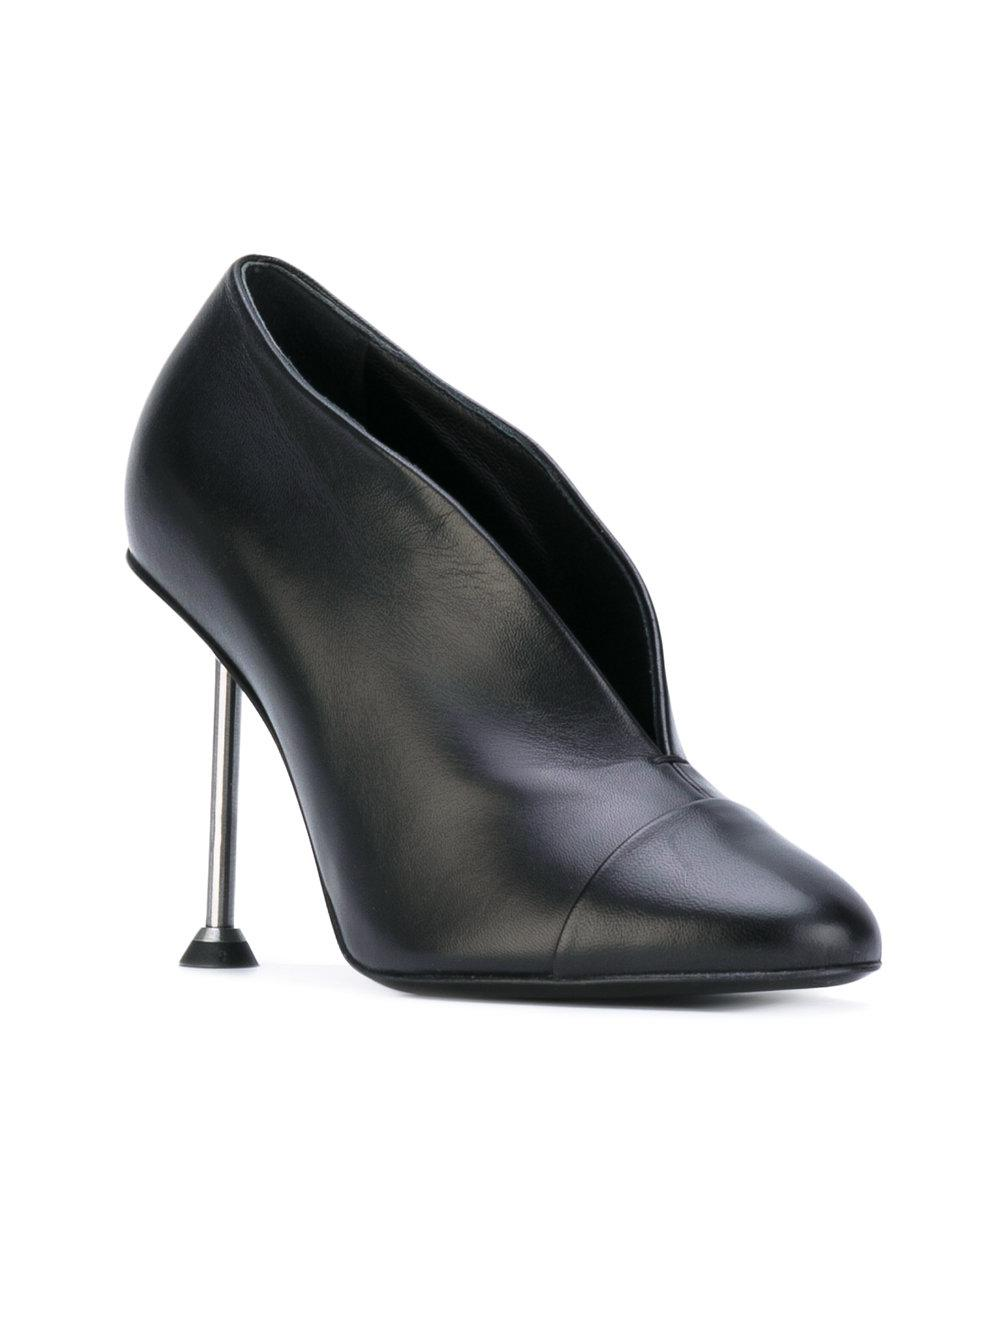 New Lower Prices Discount Top Quality Victoria Beckham Suede Pointy Pumps in Fashionable Cheap Online jSVdDRc